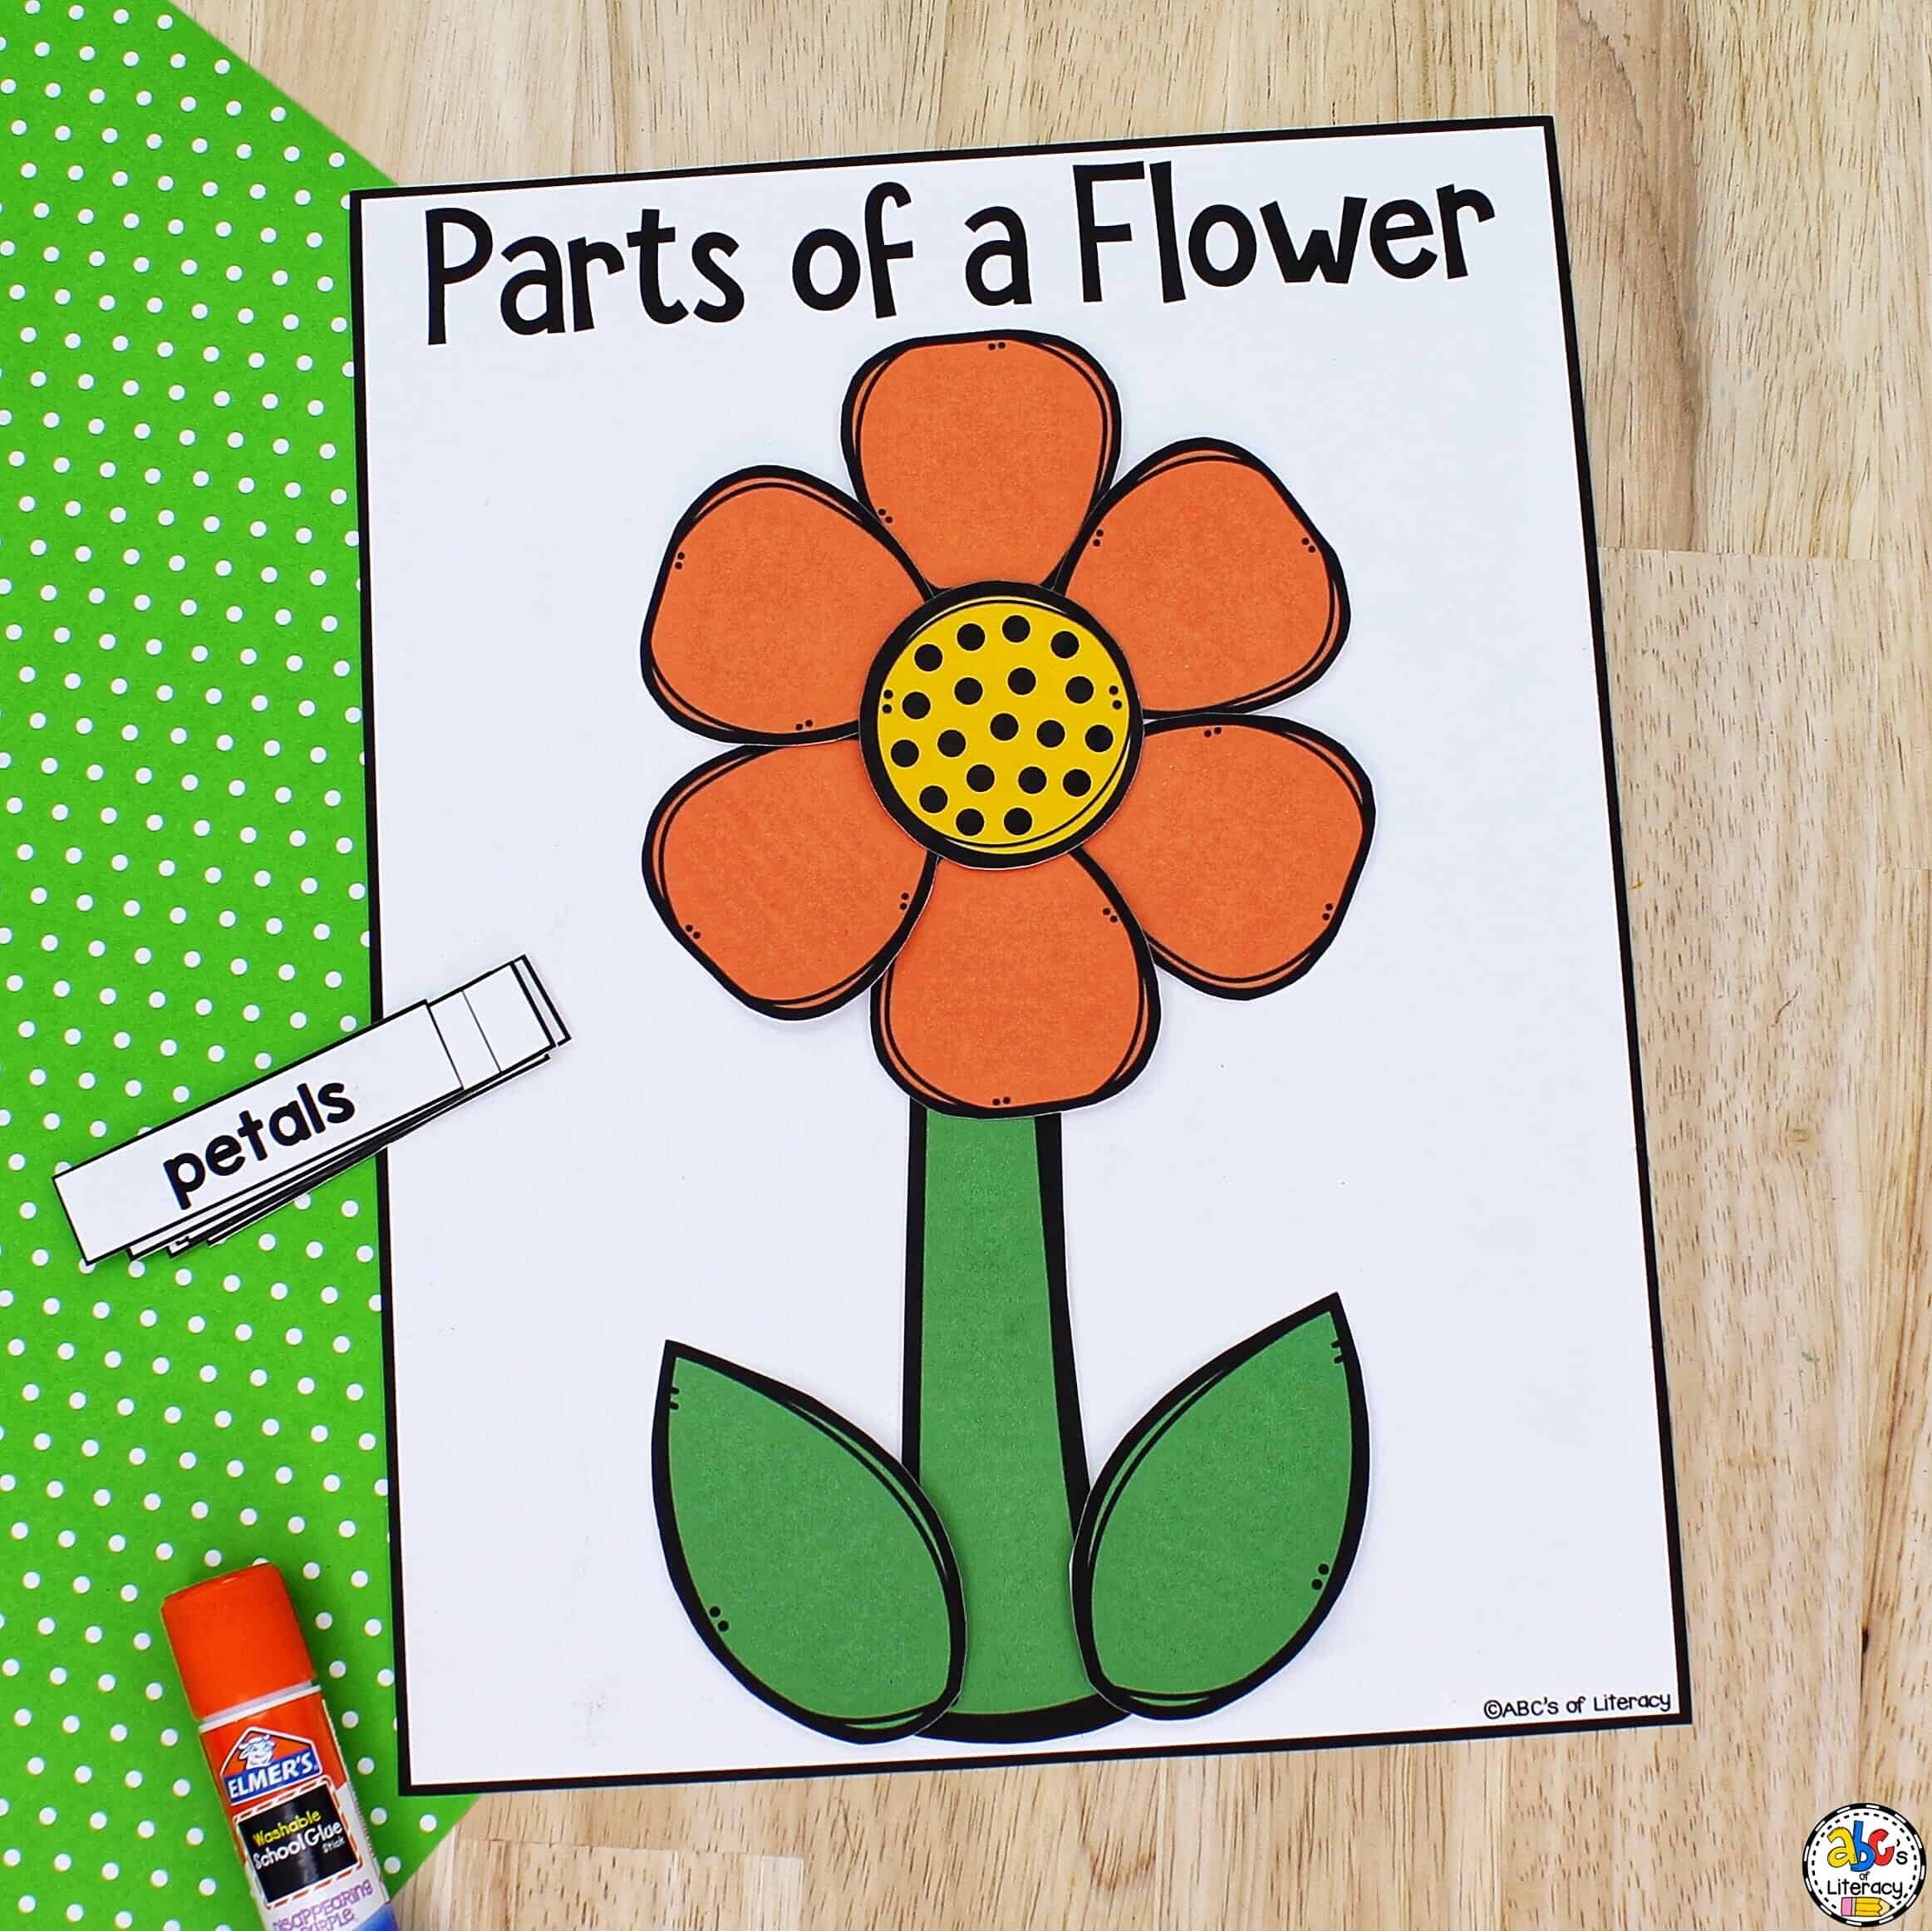 Flower Parts Craft for Kids